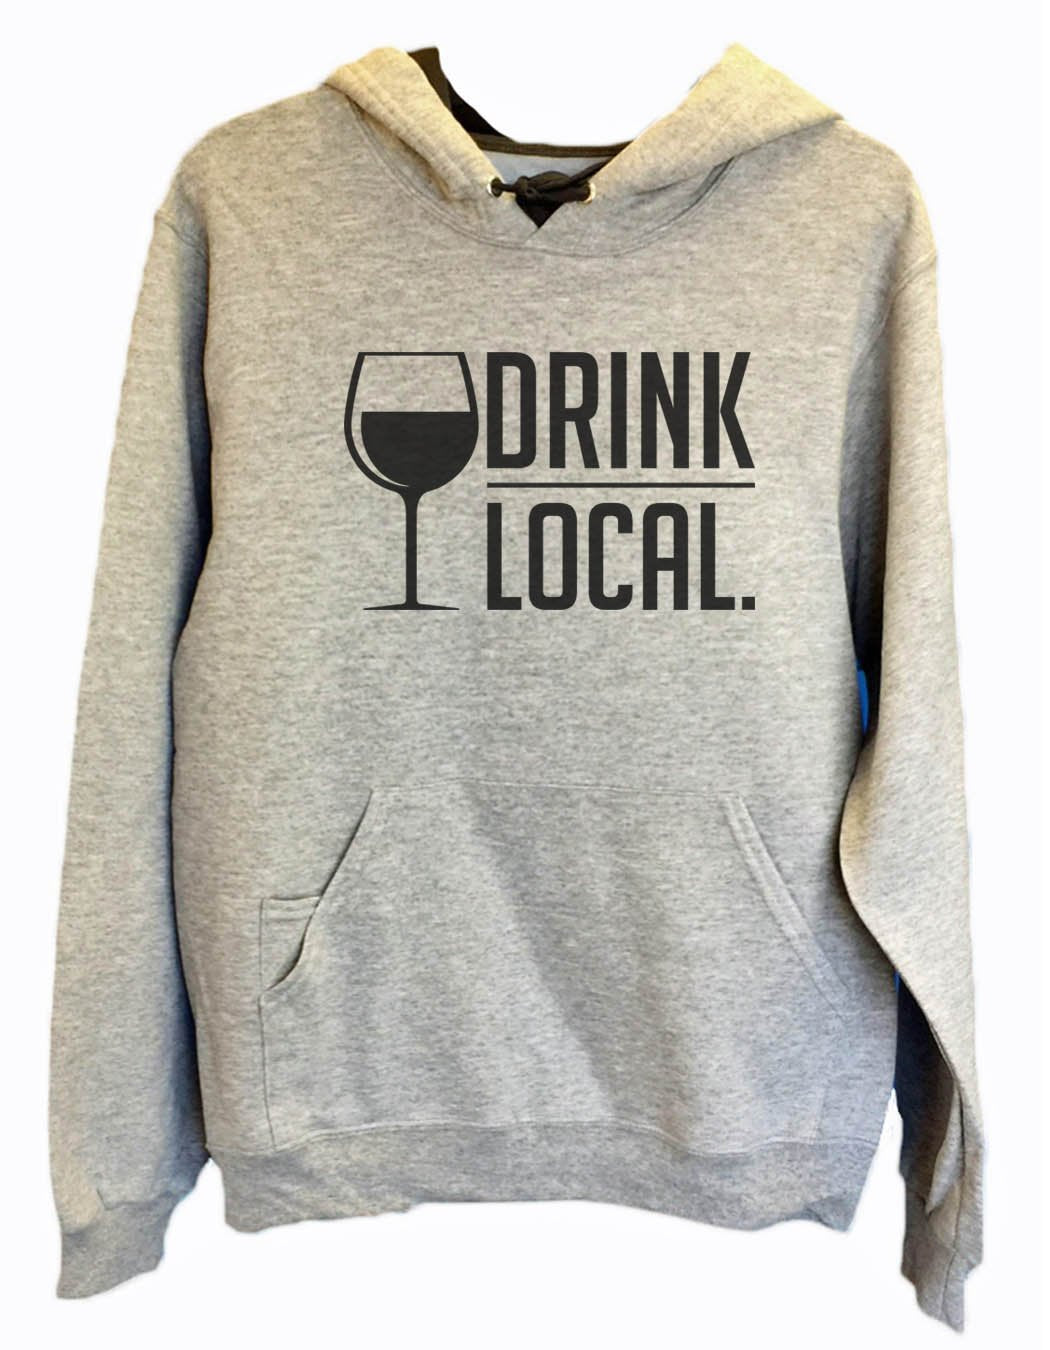 UNISEX HOODIE - Drink Local. - FUNNY MENS AND WOMENS HOODED SWEATSHIRTS - 2157 Funny Shirt Small / Heather Grey